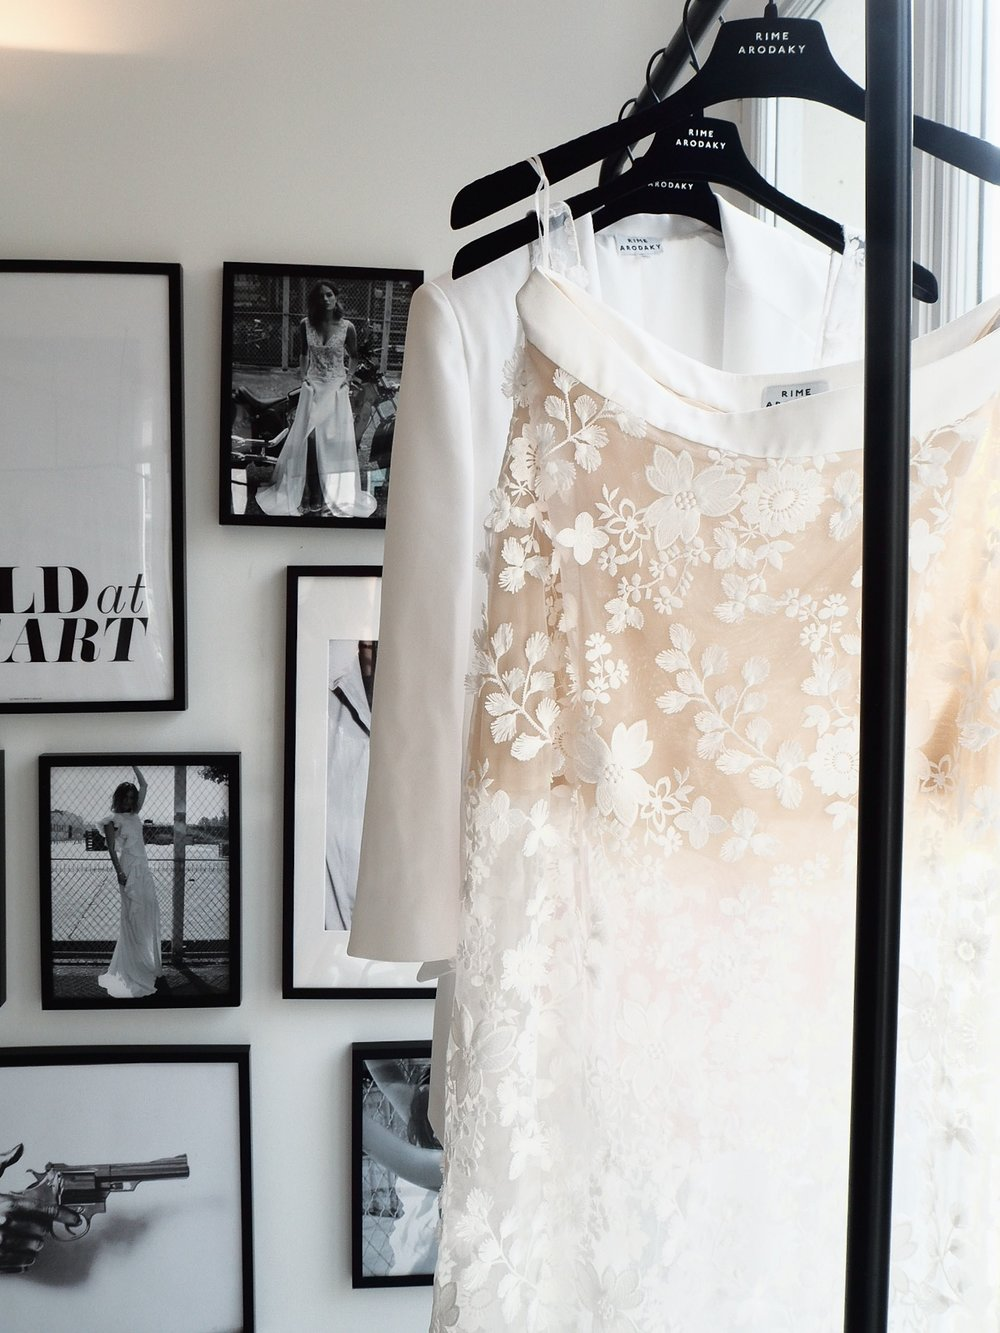 Exclusive Sneak Peek of the new bridal collection by Rime Arodaky featured on LOVE FIND CO.